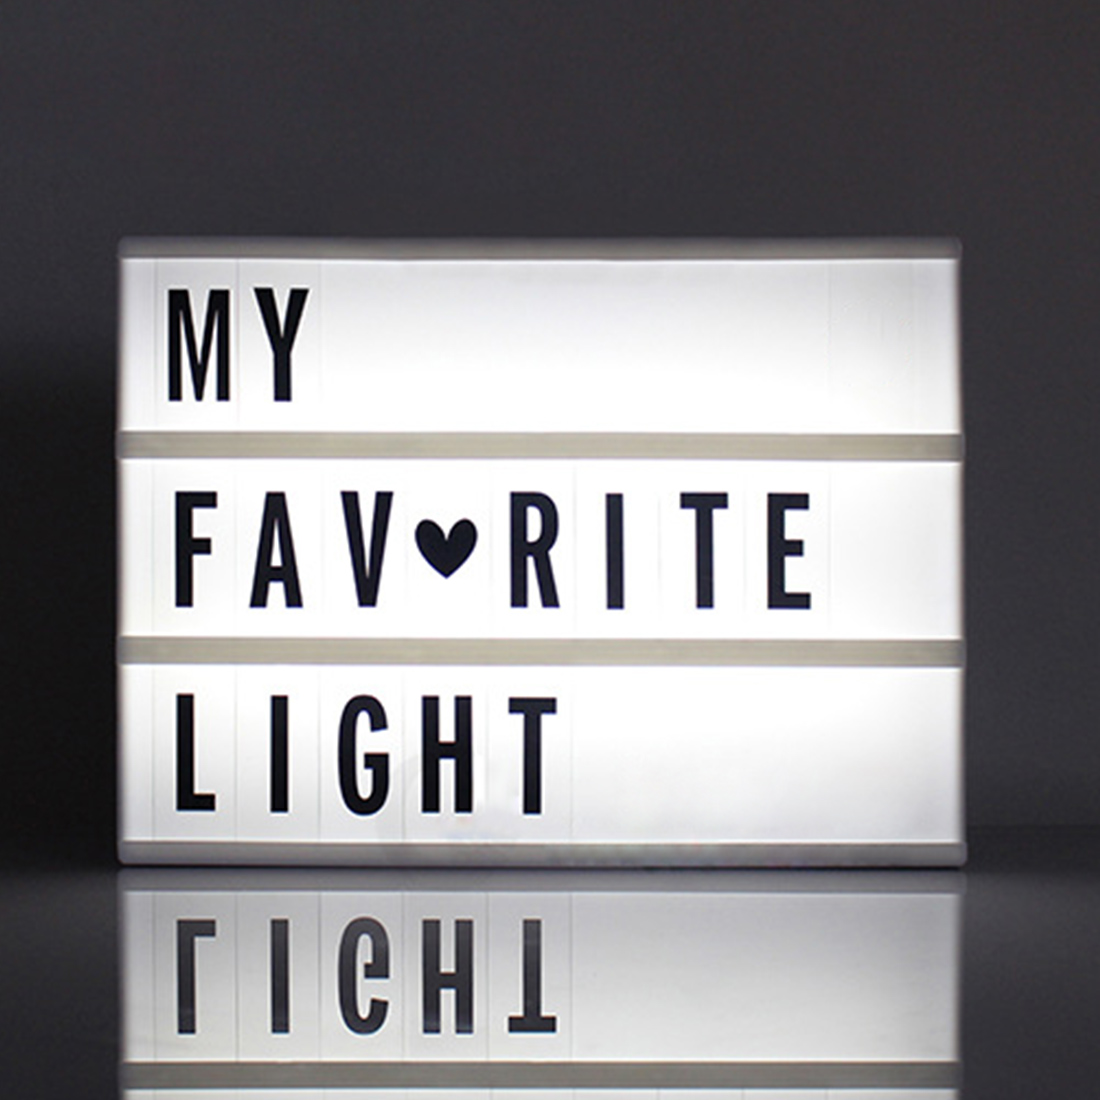 Cinematic LED Porch Light Up Sign Box Lightbox Message Board Cinema LED Letter Symbol Home Party Wedding Lamp Decor A6 Size